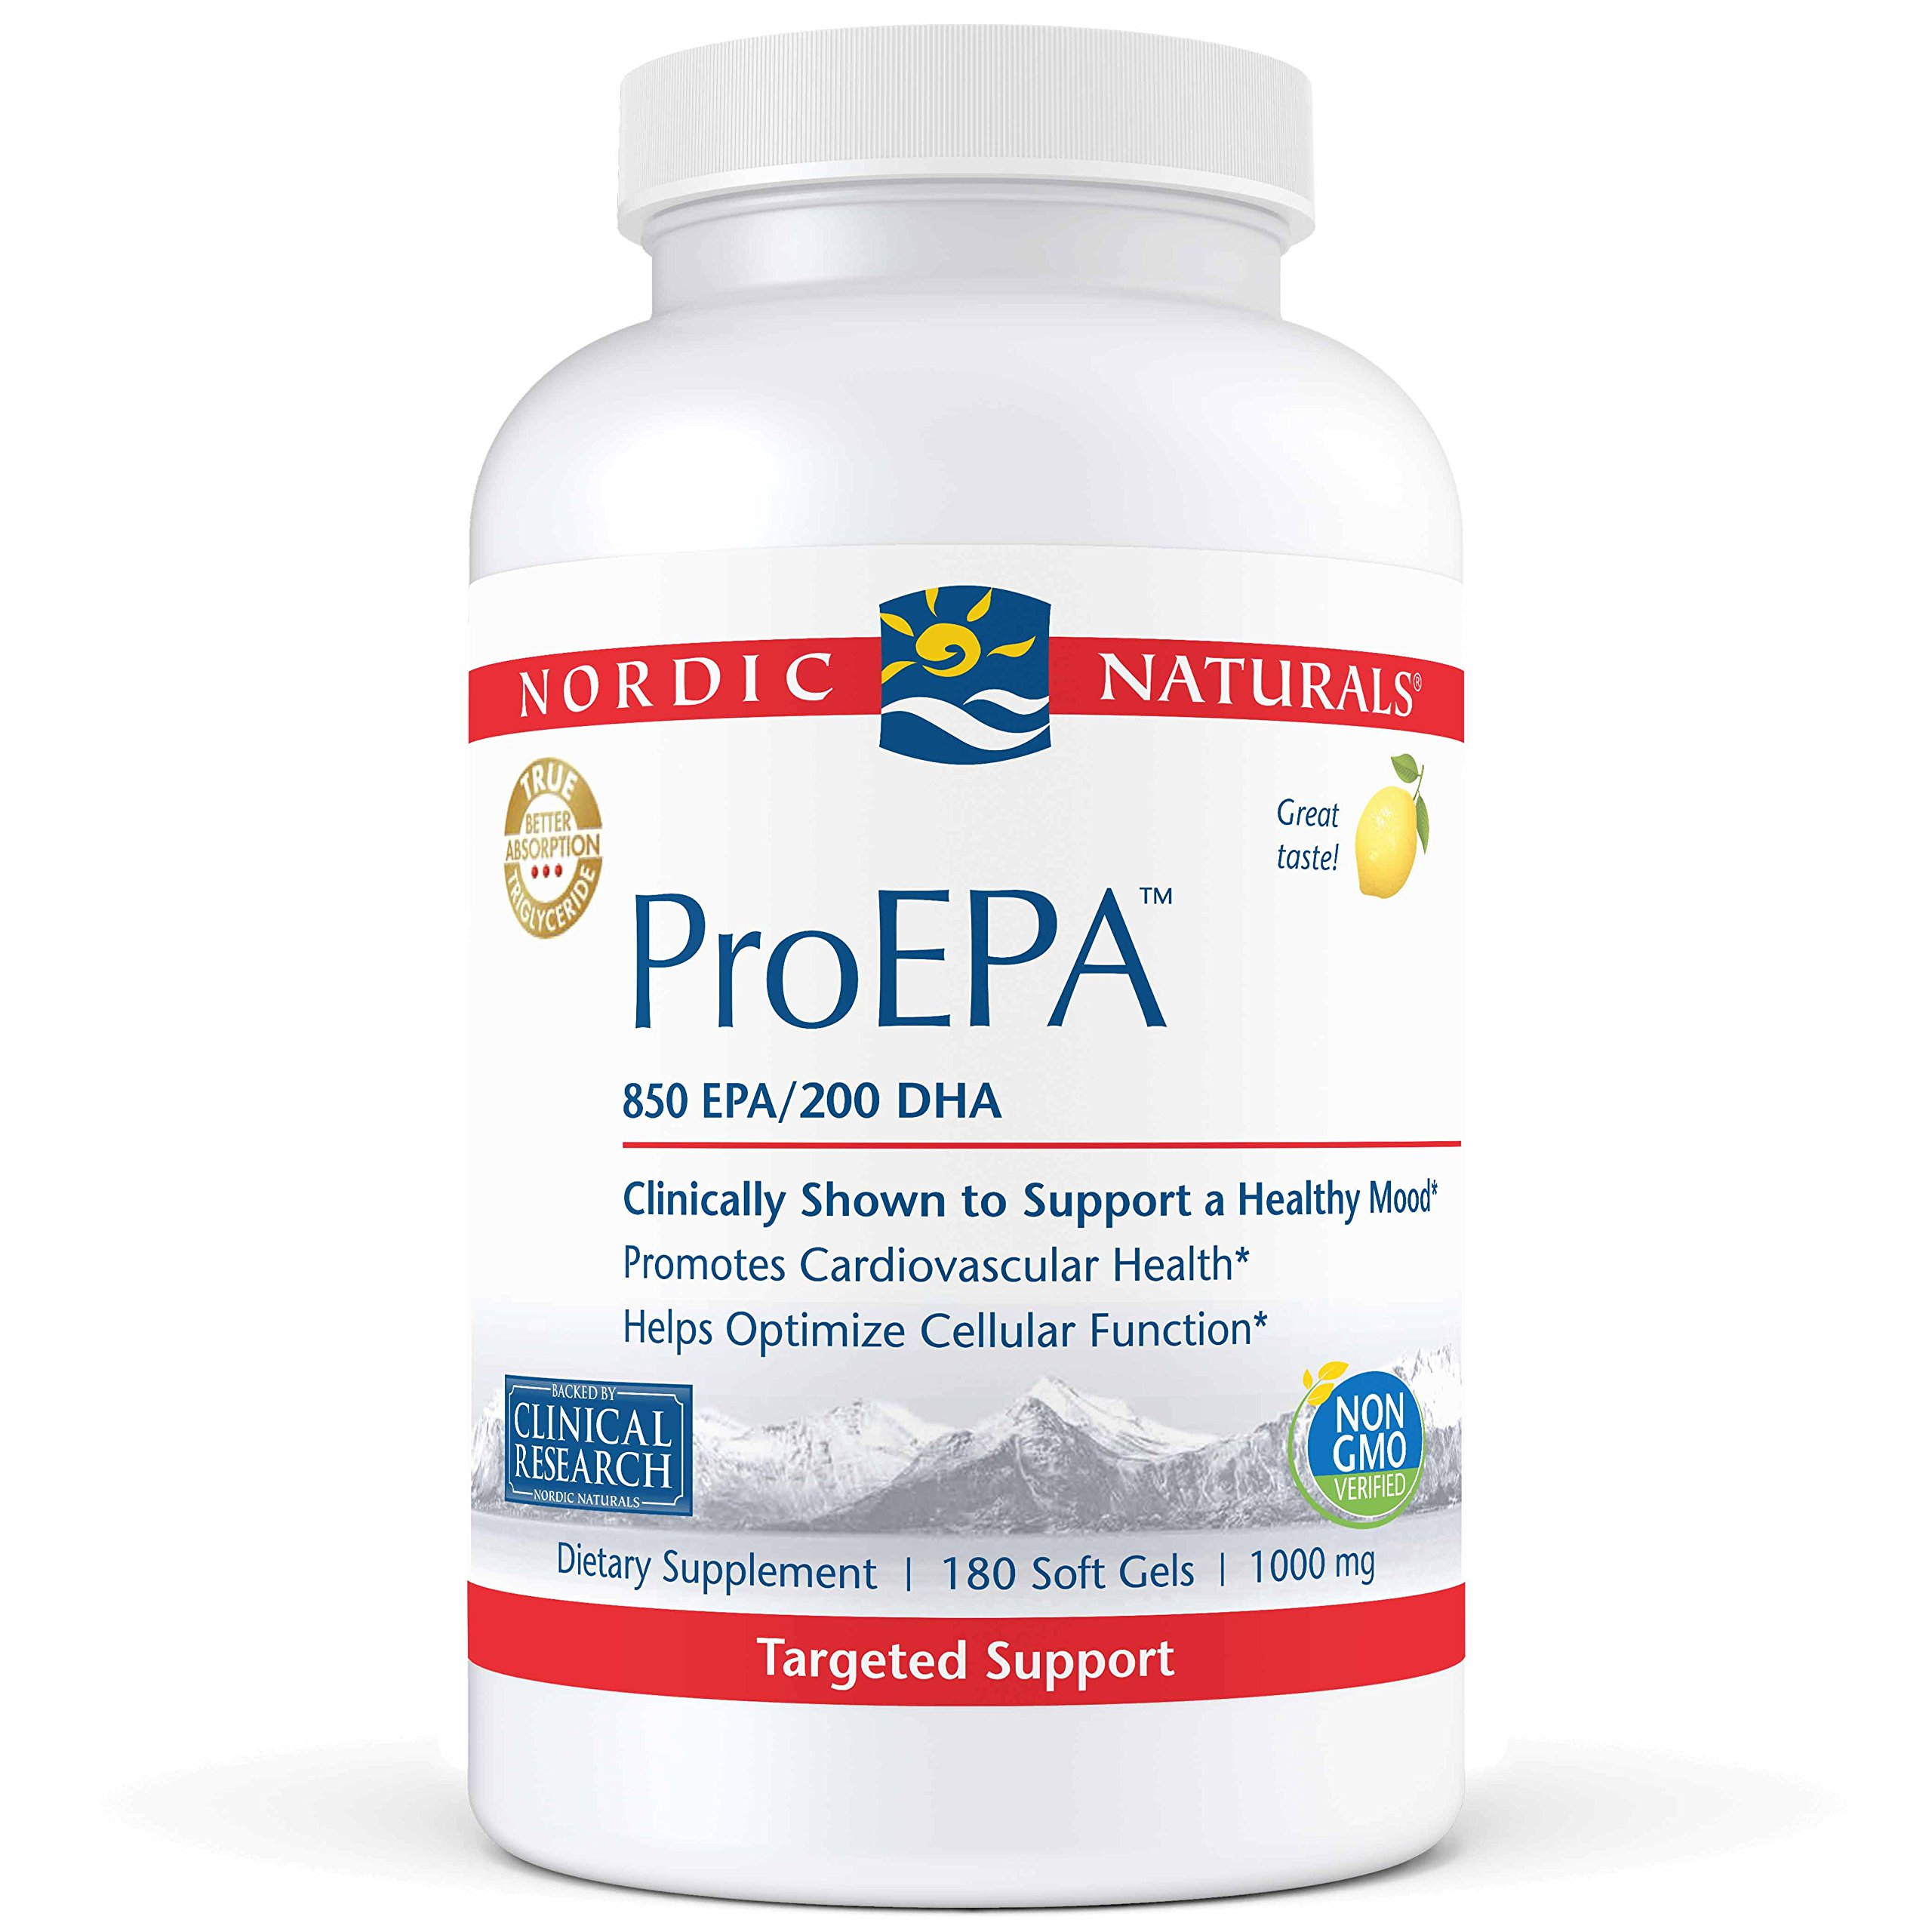 Nordic Naturals Pro - Proepa, Promotes Cardiovascular Health, 60 Count by Nordic Naturals (Image #1)